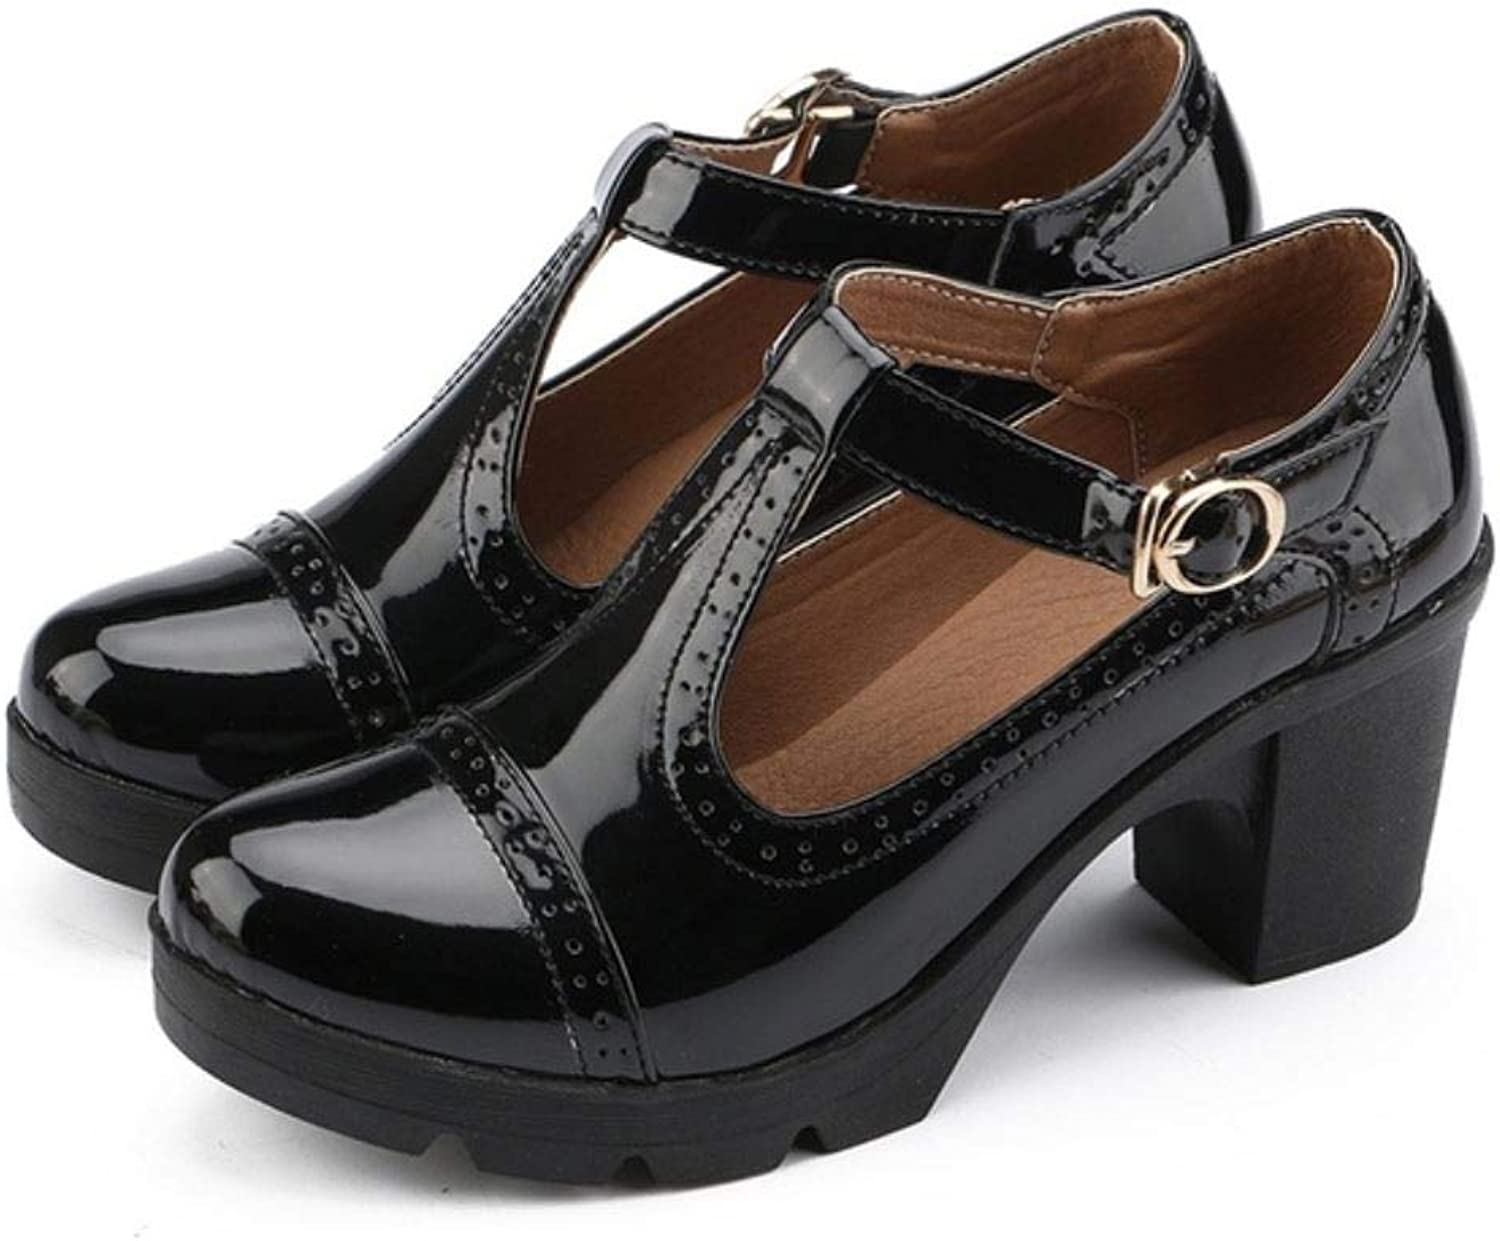 Ningbairong Fashion Women shoes Platform Wedges Autumn Casual Sneakers Dress Oxfords Leather shoes